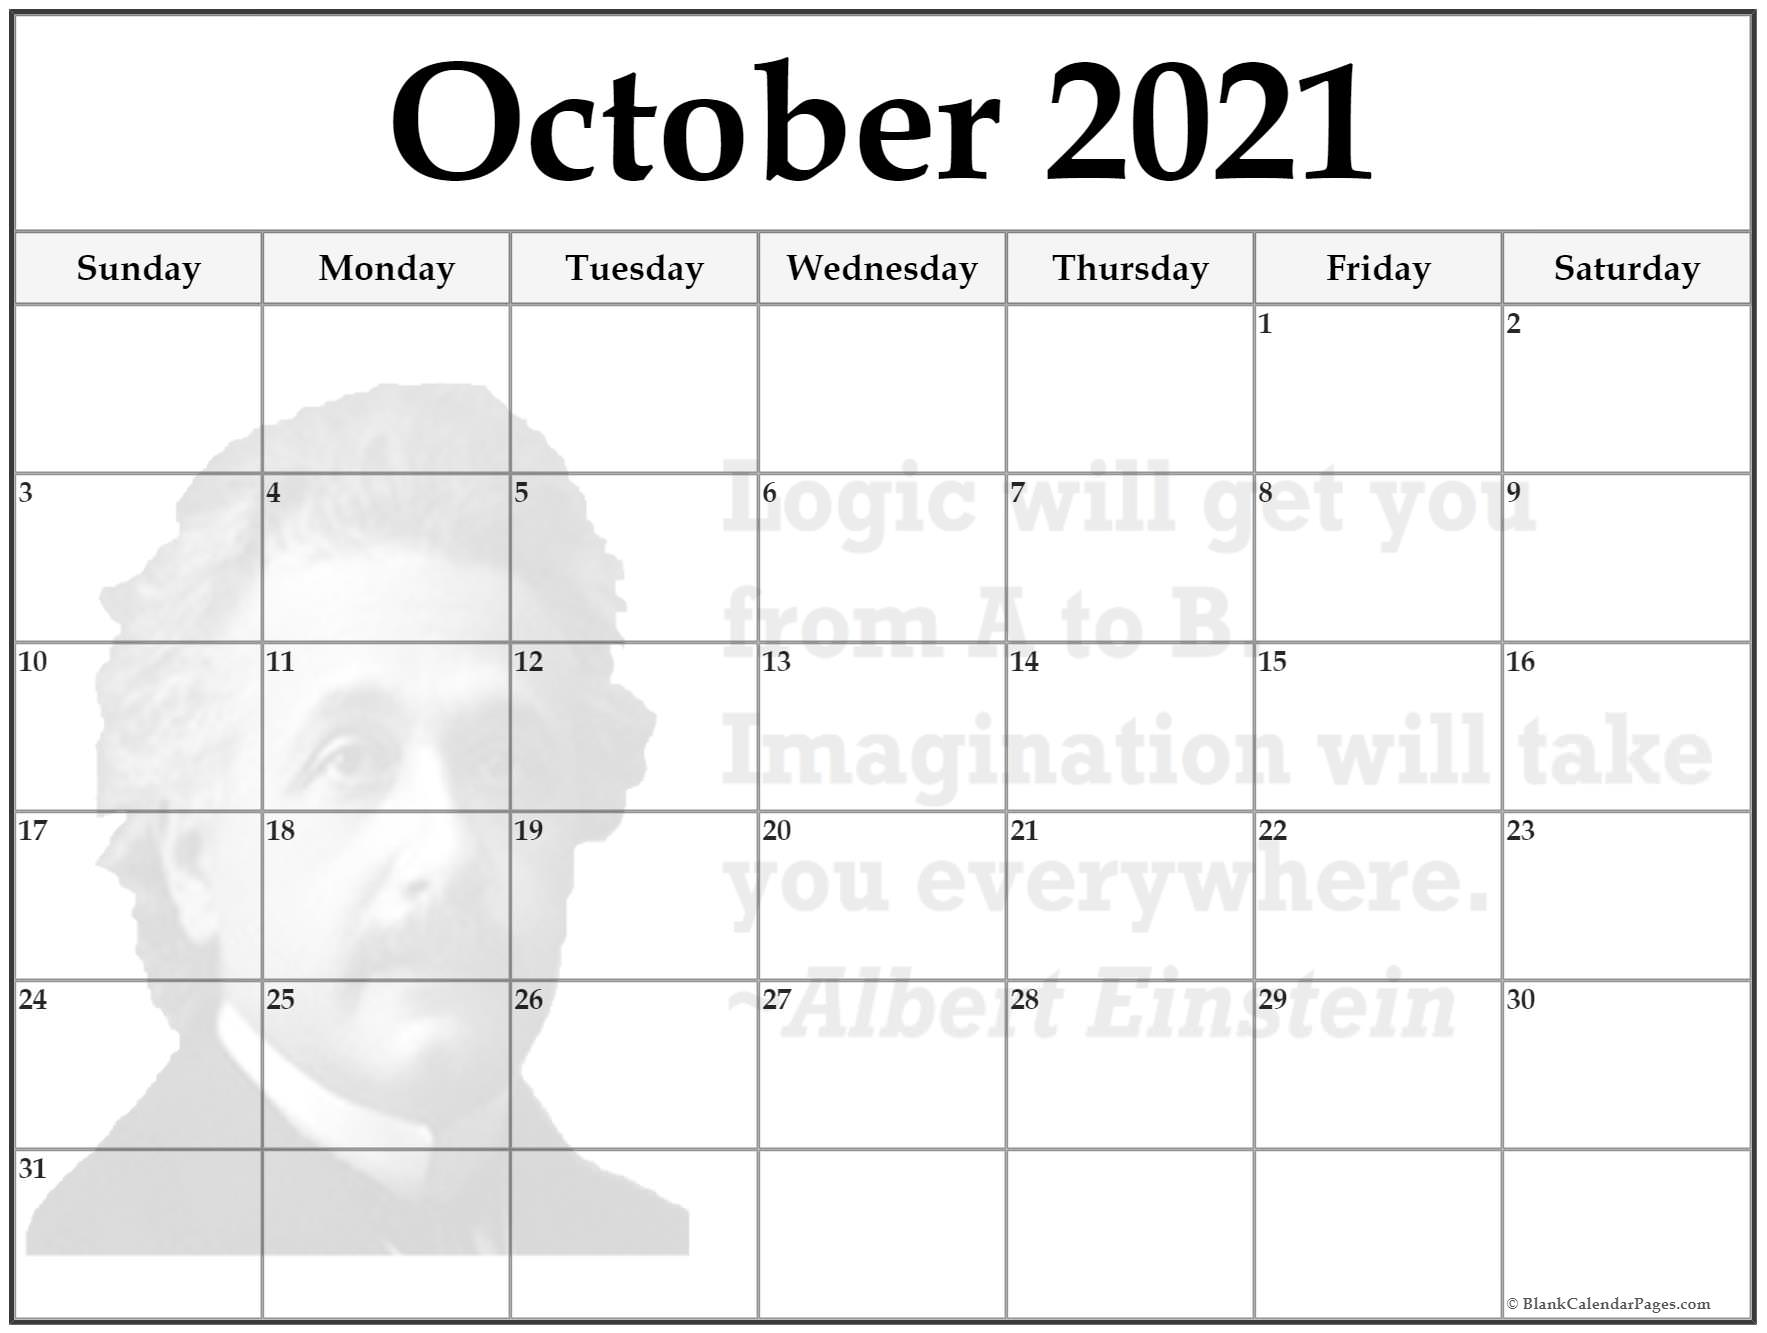 October einstein calendar 2020Logic will get you from A to B. Imagination will take you everywhere ~Albert Einstein